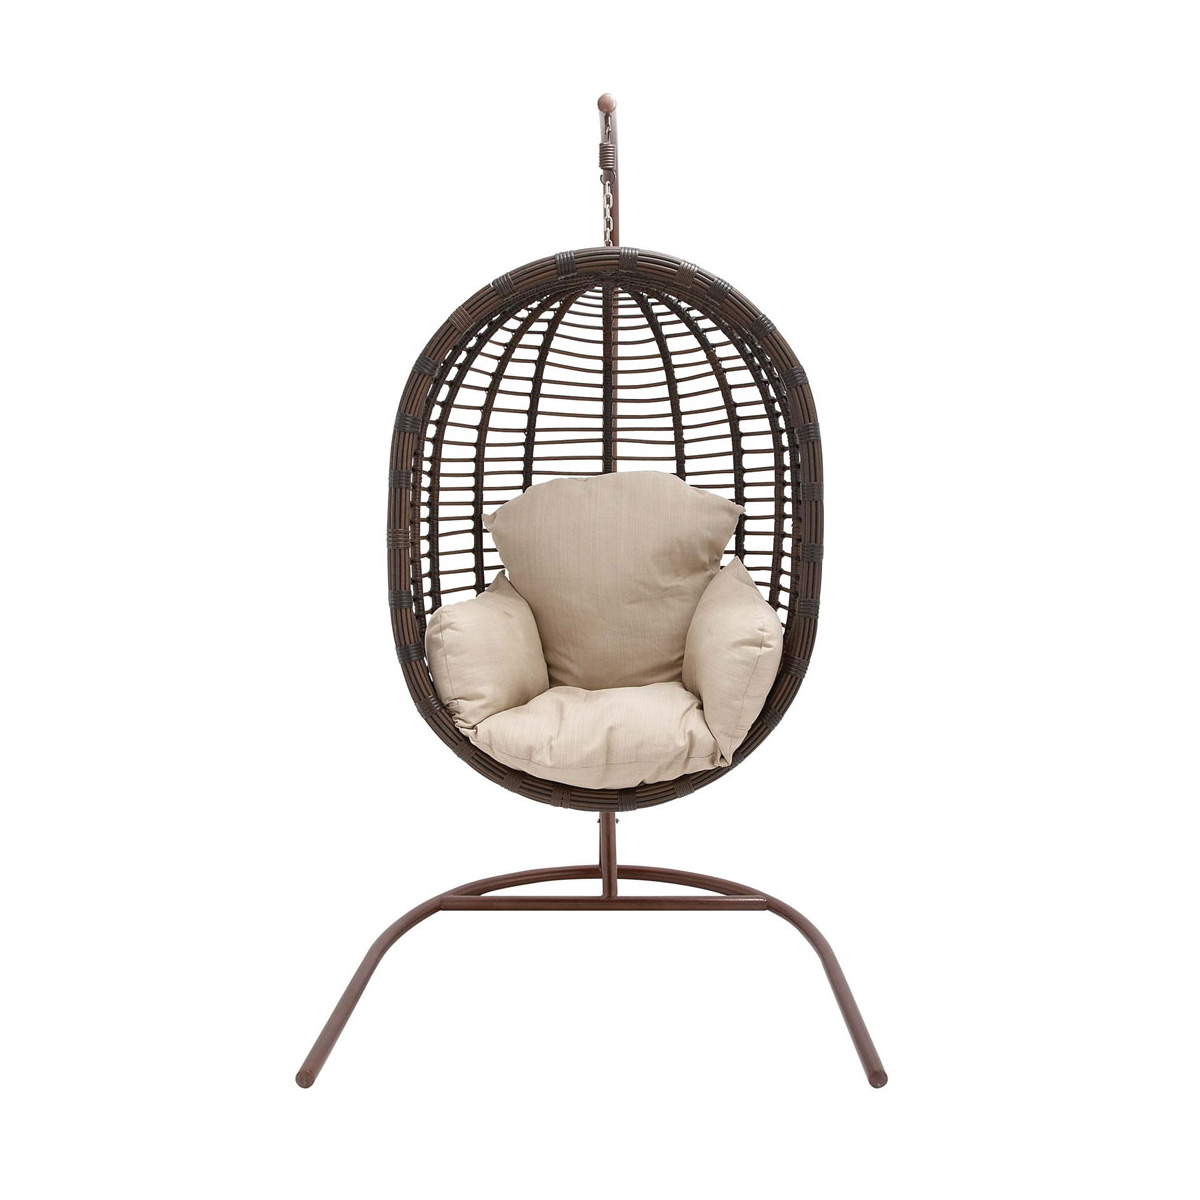 Outdoor Wicker Hanging Egg Chair Hanover Outdoor Wicker Rattan Hanging Egg Chair Swing With